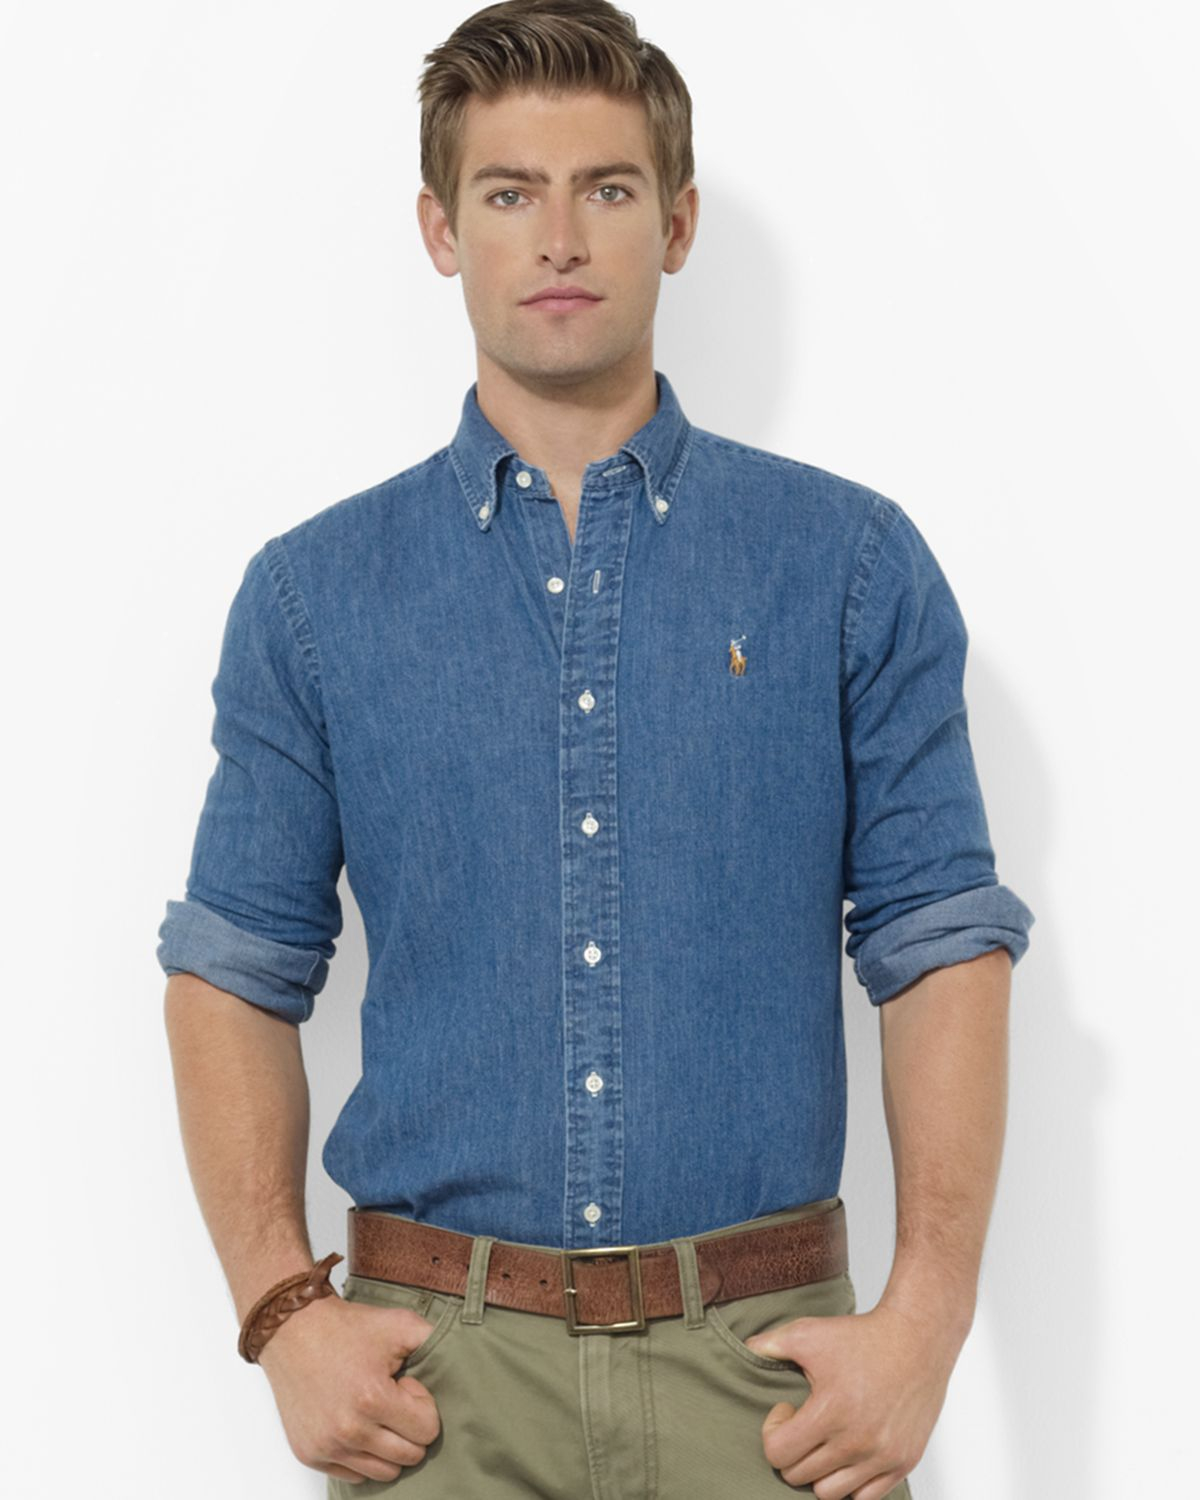 Lyst - Ralph Lauren Polo Denim Classic Button Down Shirt - Regular Fit in Blue for Men